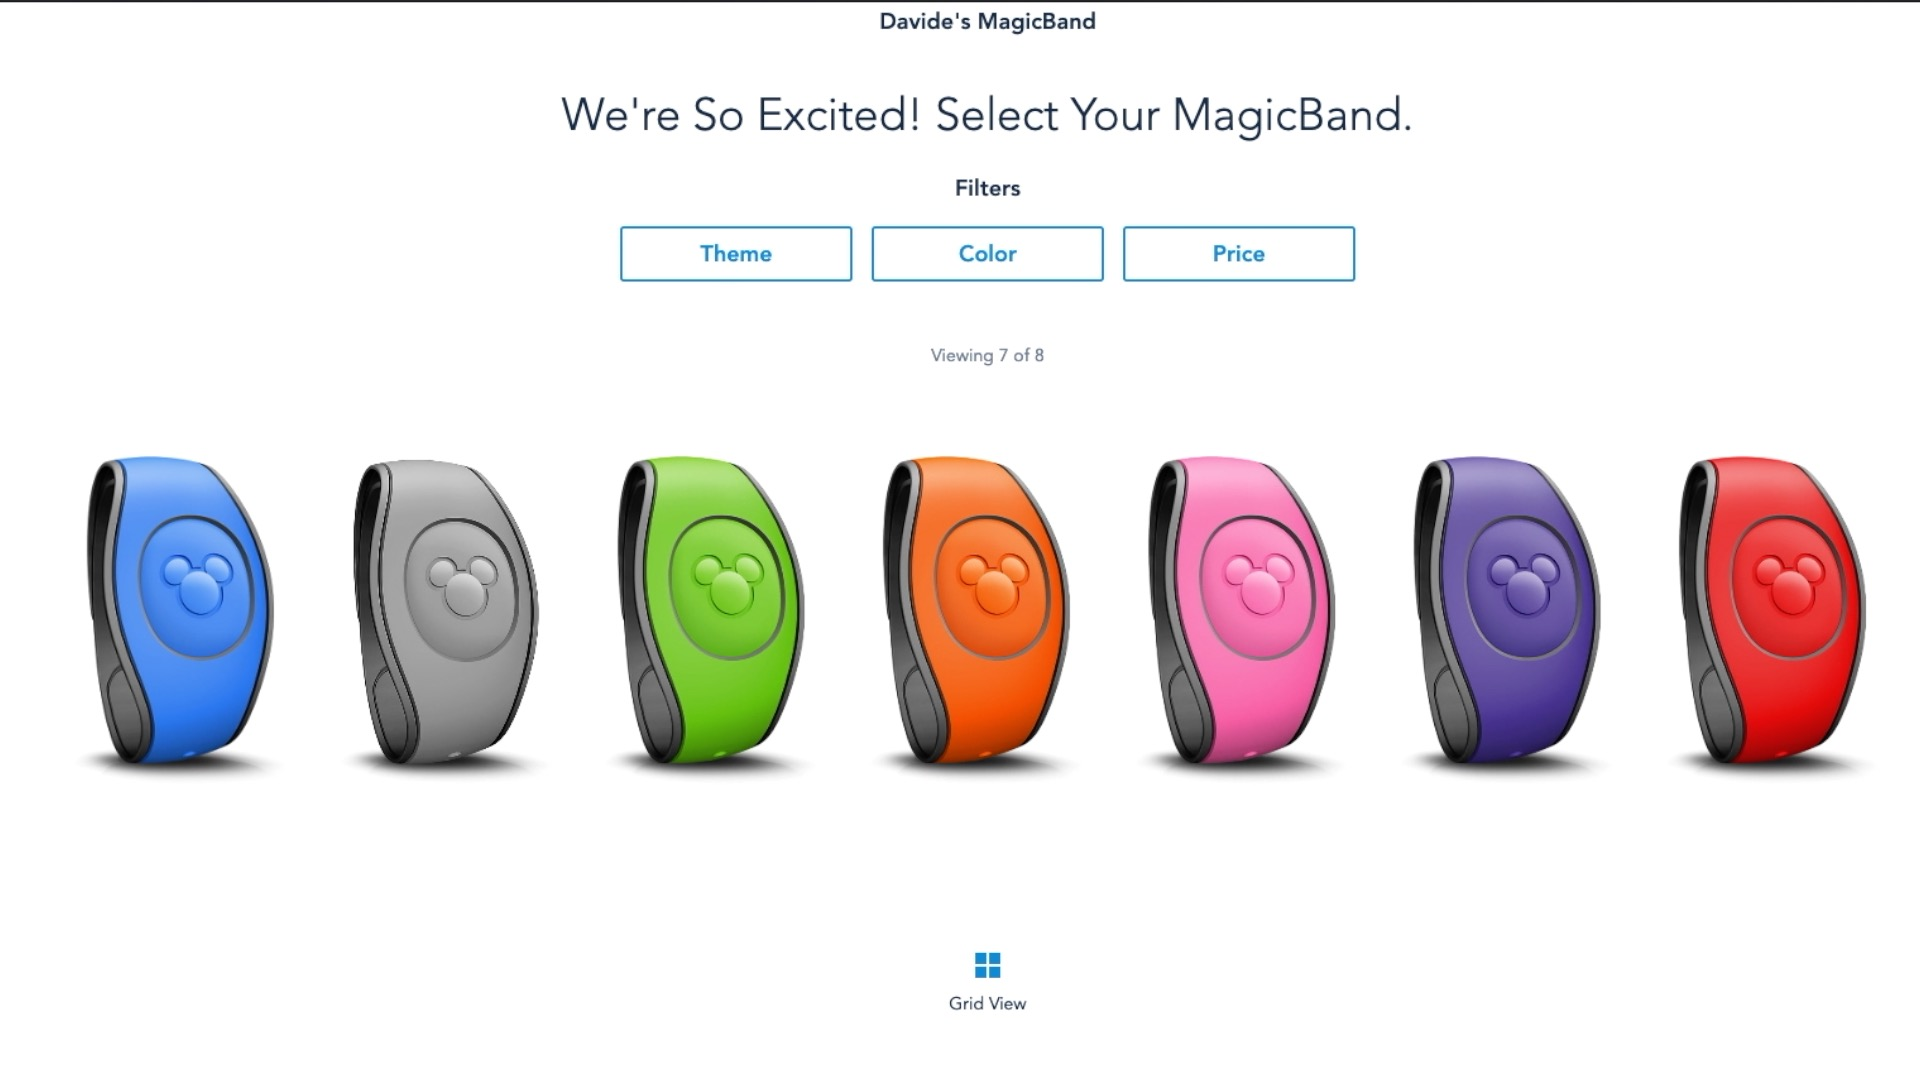 MAGIC BAND basic